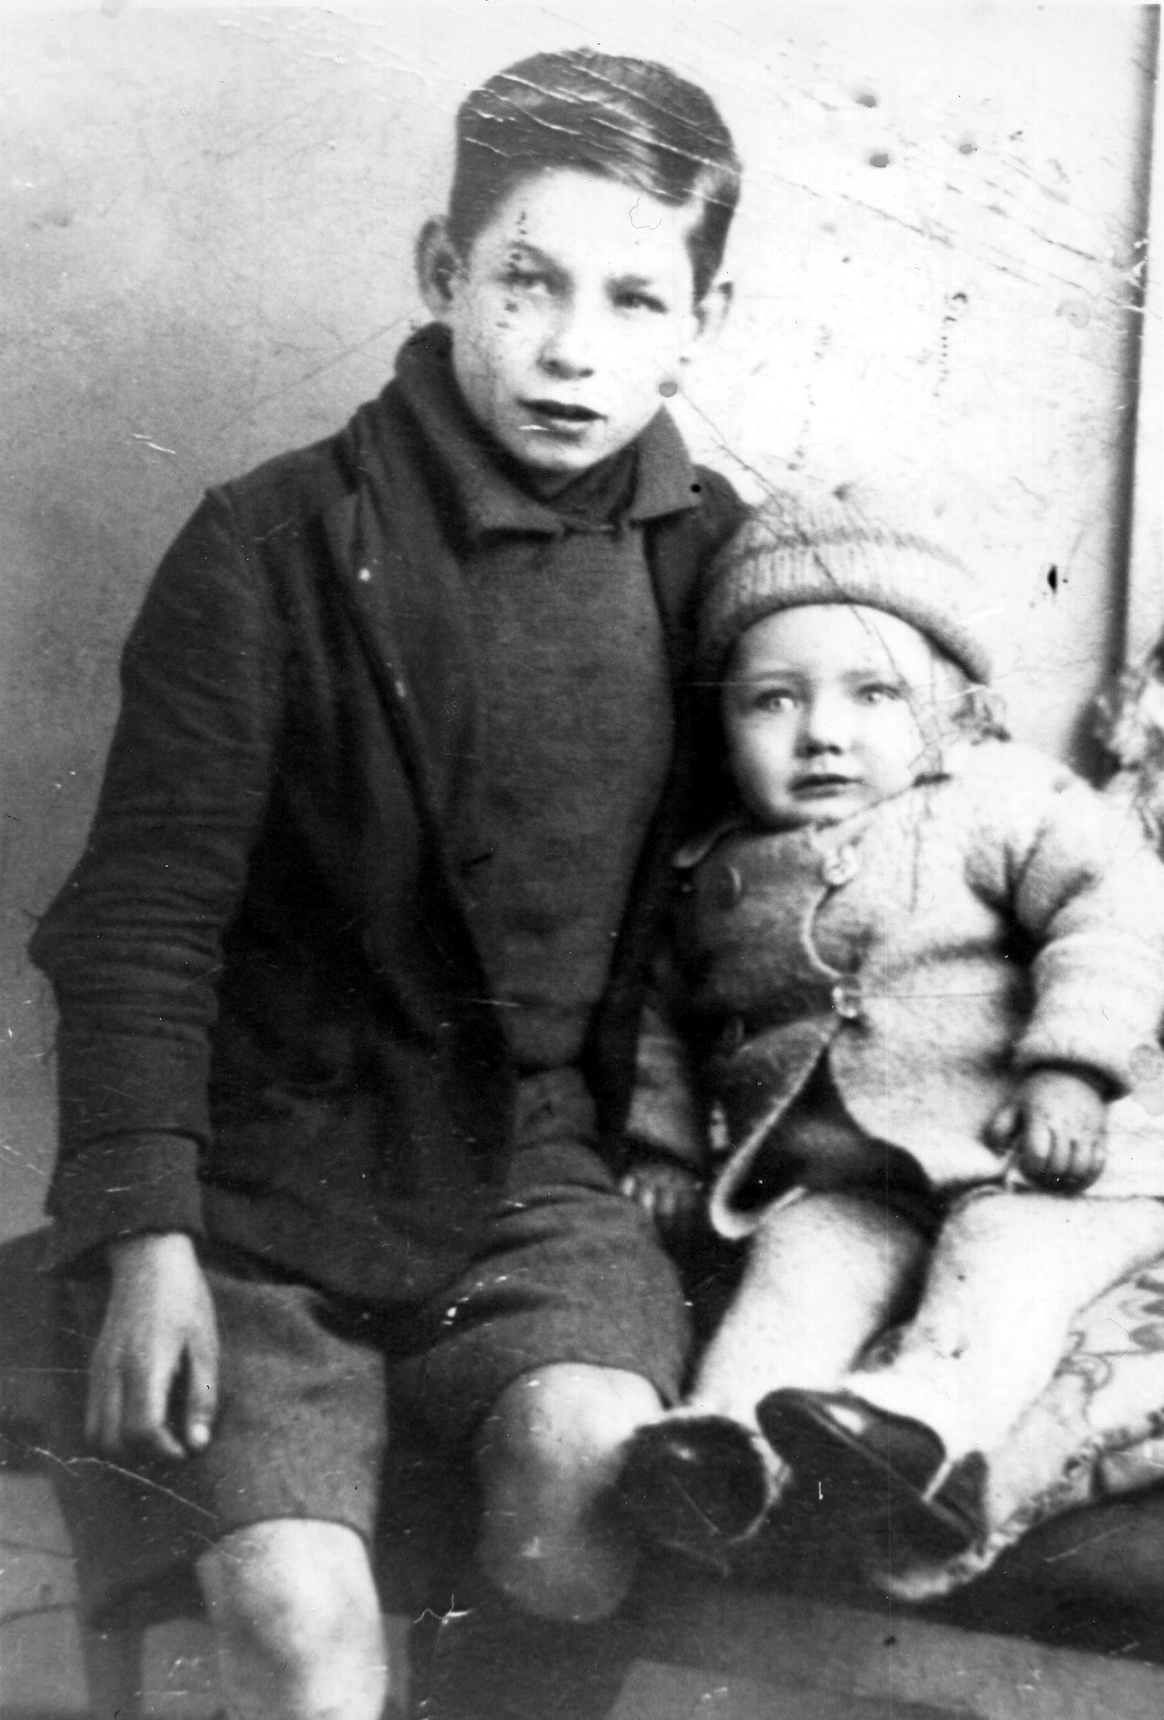 Studio Portrait Boy With Younger Boy c.1934